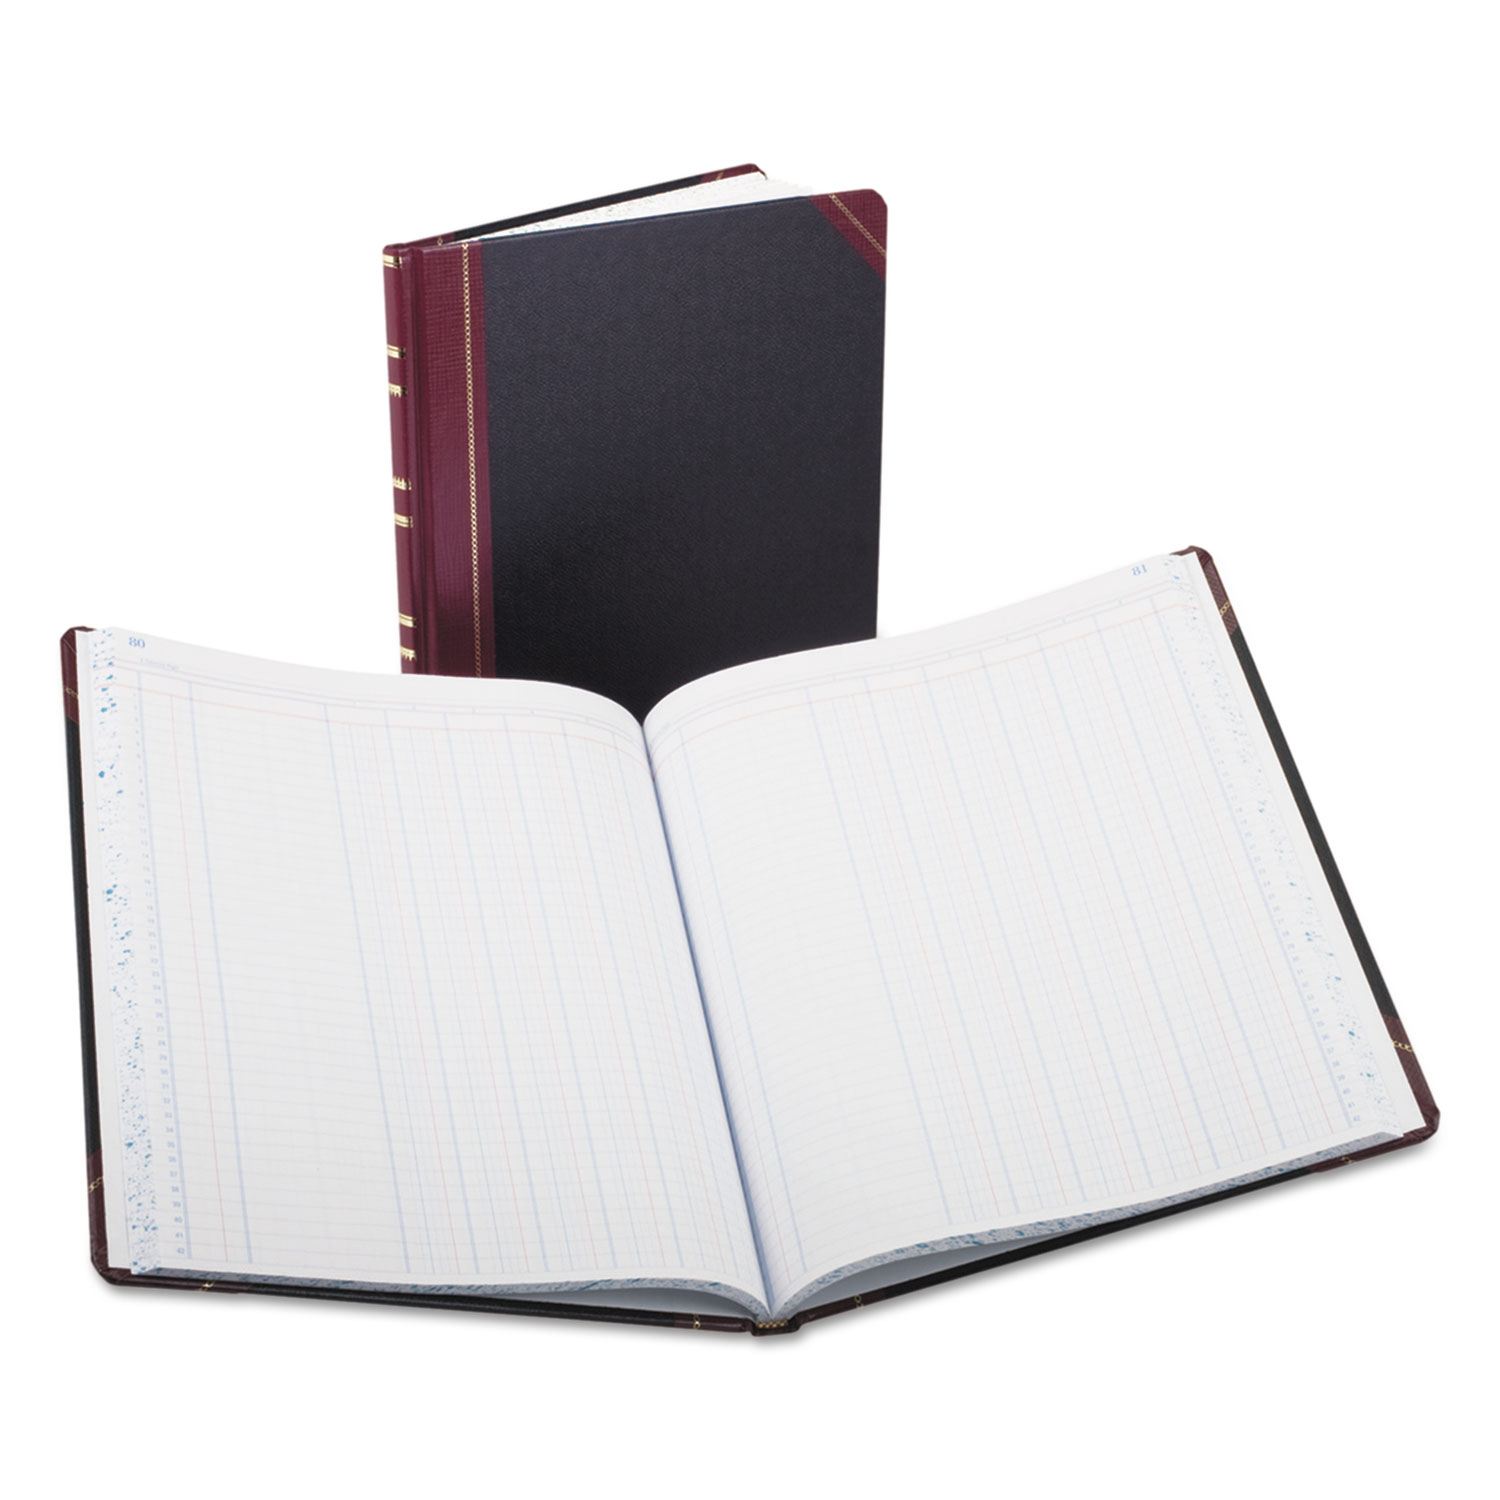 Columnar Accounting Book, 6 Column, Black Cover, 150 Pages, 10 1/8 x 12 1/4